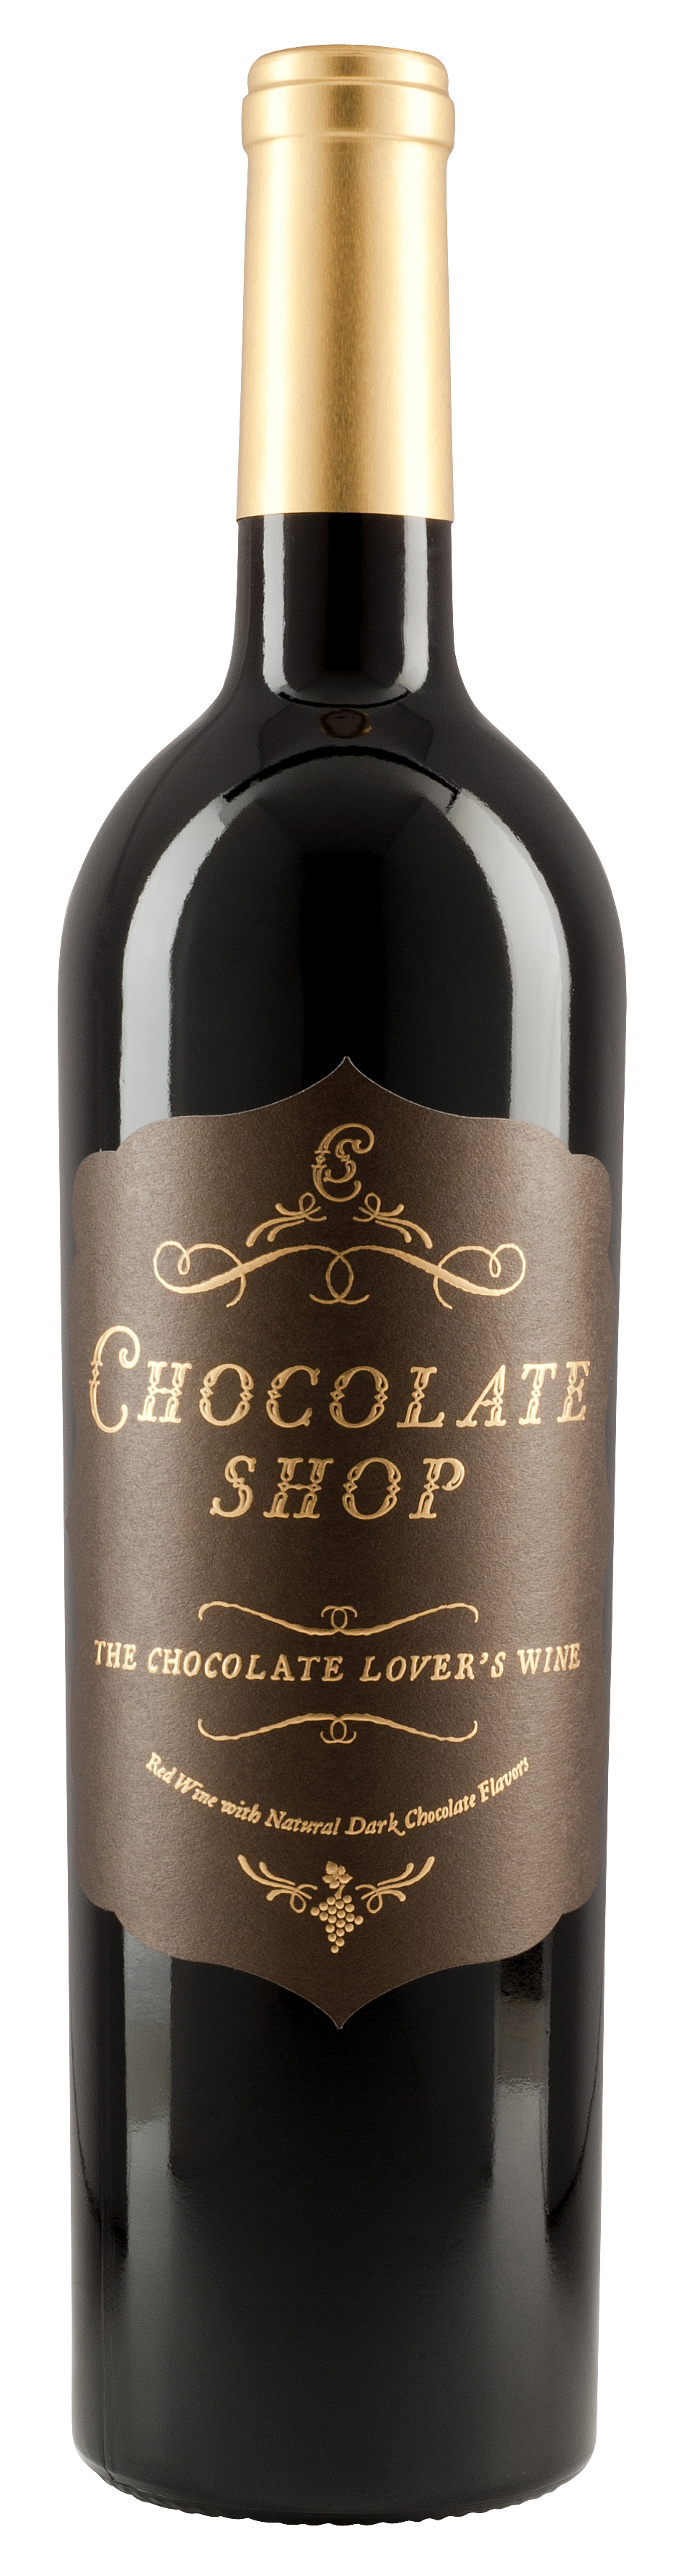 Precept Wine » Our Wines » Chocolate Shop » Chocolate Red Wine